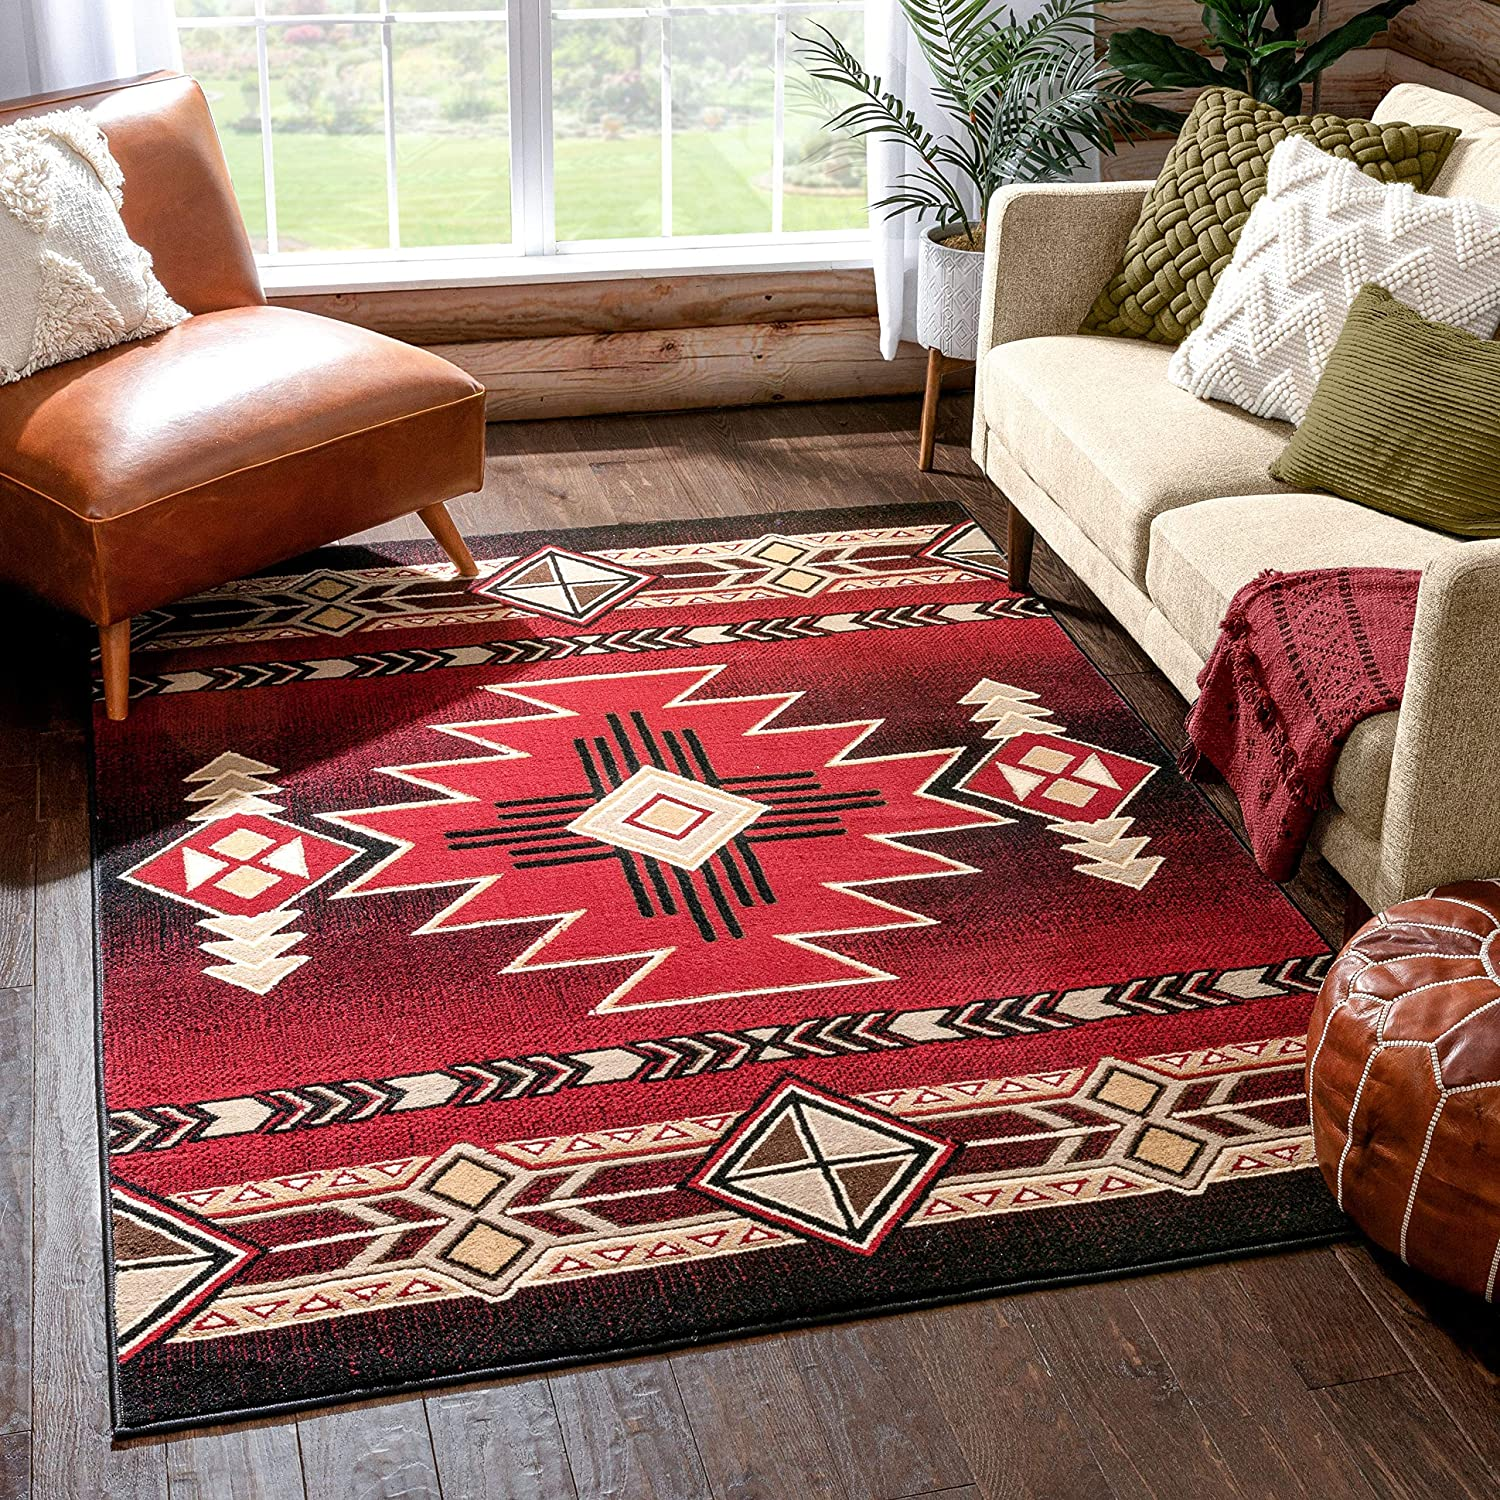 Well Woven Wilton free Red Oriental Medallion Rug 3'11